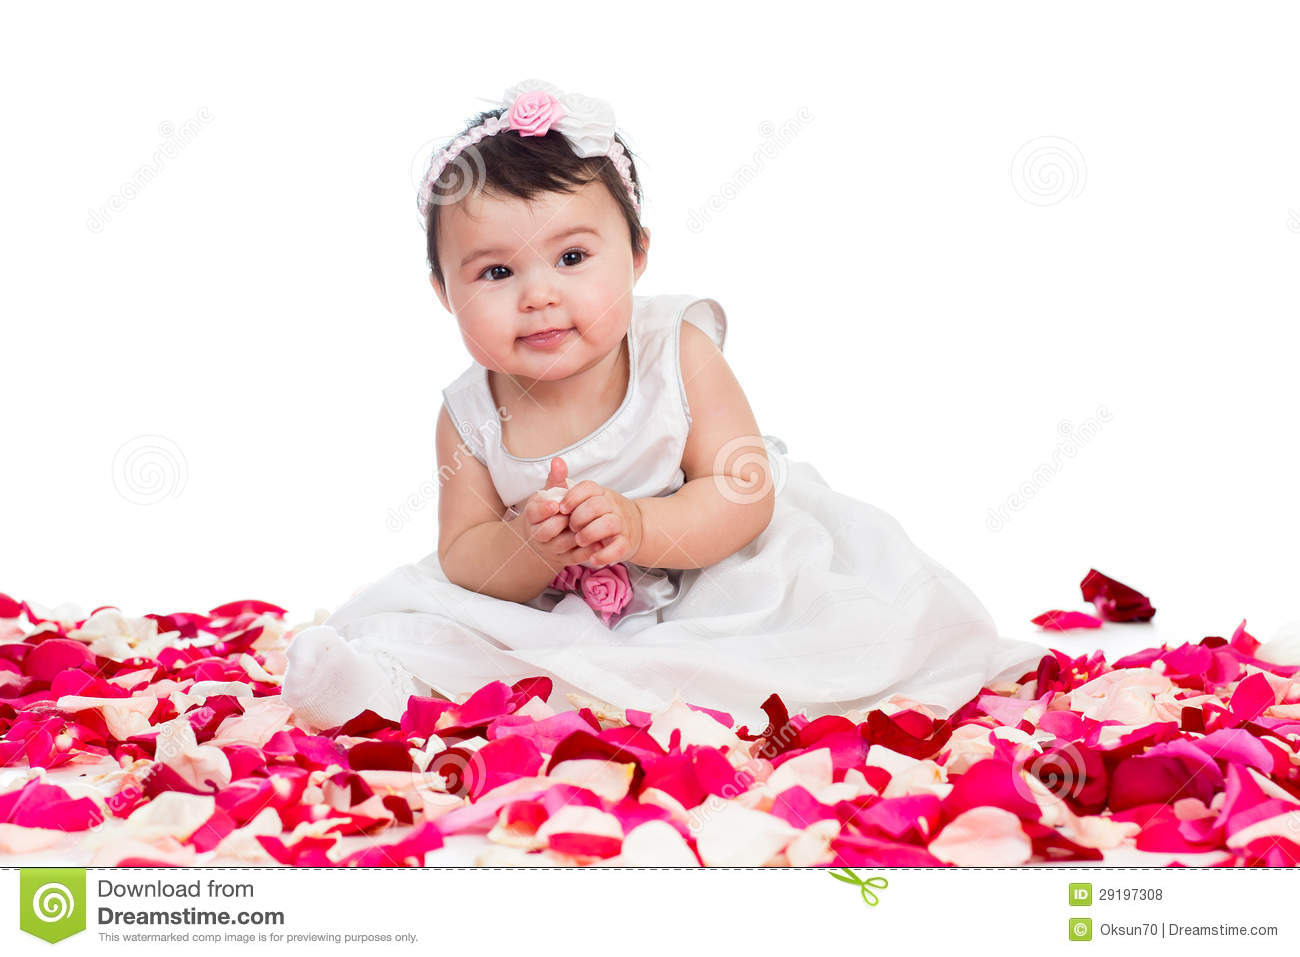 happy baby girl stock photo. image of person, care, flower - 29197308